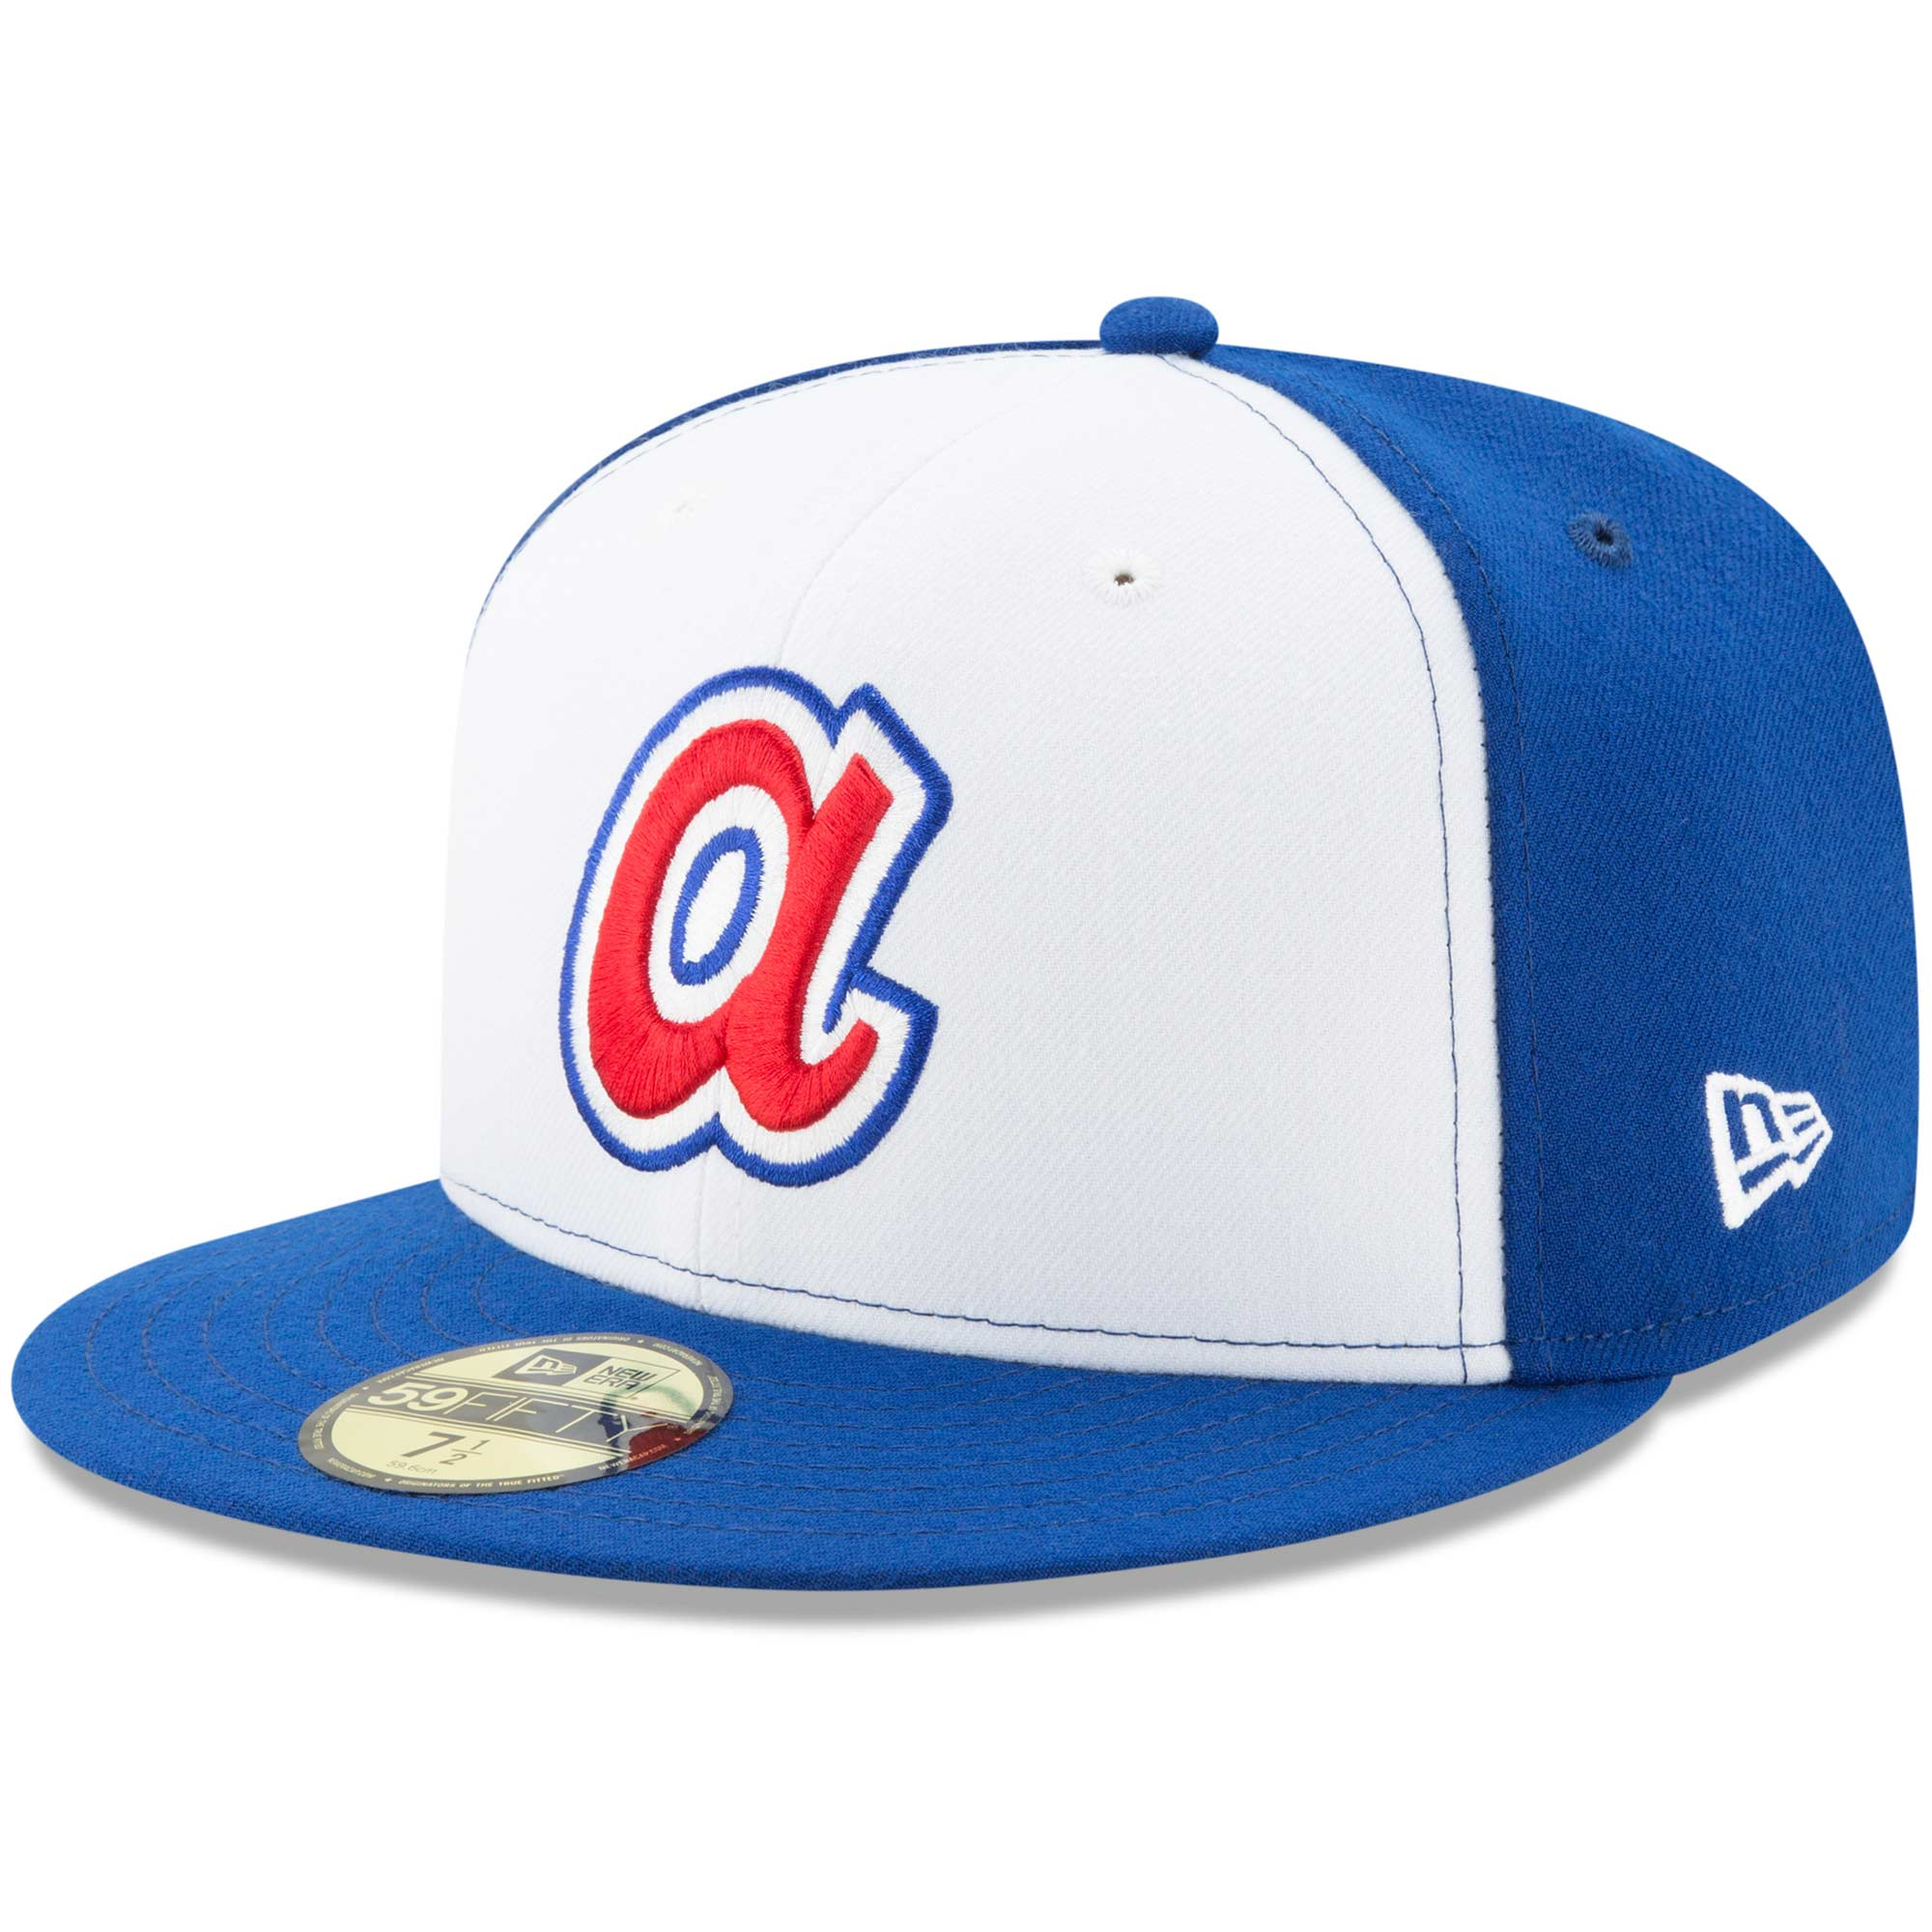 Atlanta Braves New Era Cooperstown Collection Wool 59FIFTY Fitted Hat - White